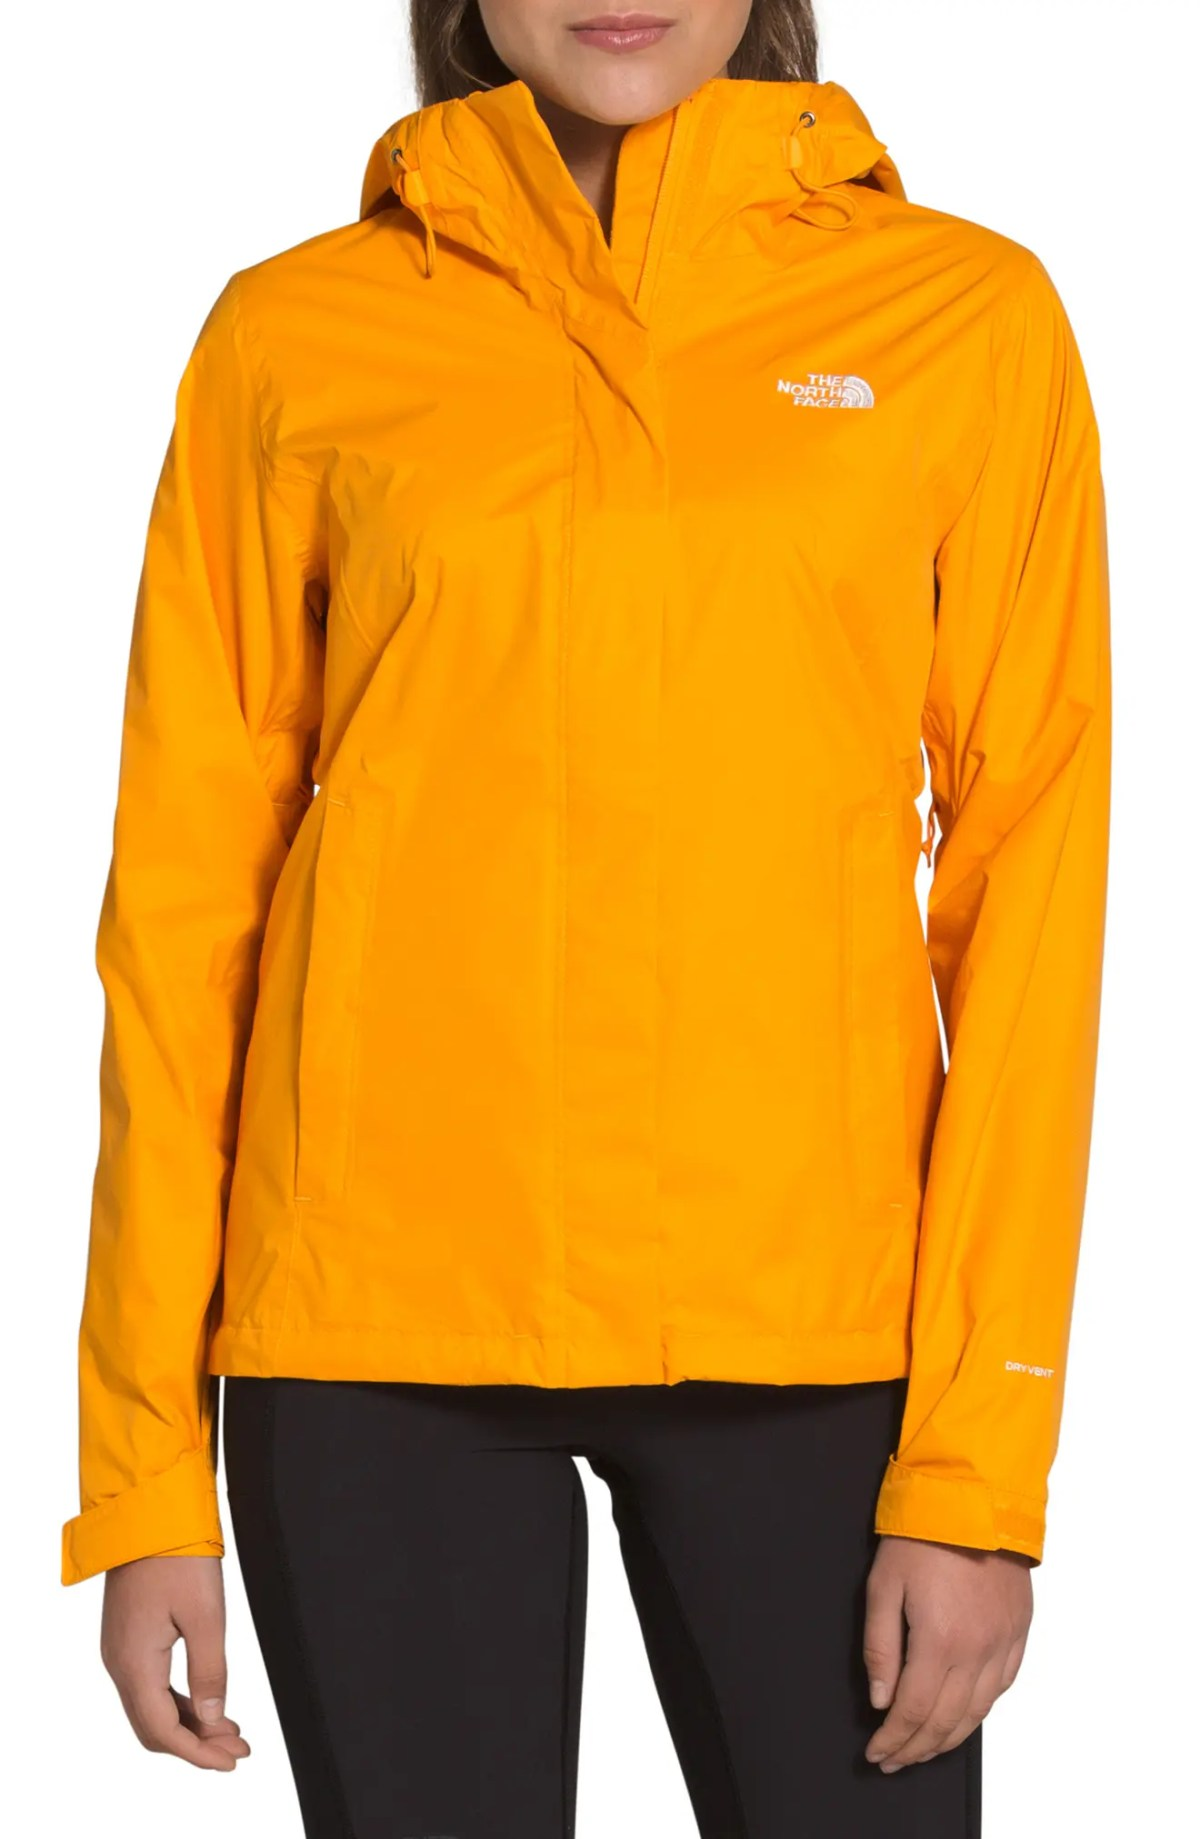 THE NORTH FACE Venture 2 Waterproof Jacket, Main, color, SUMMIT GOLD